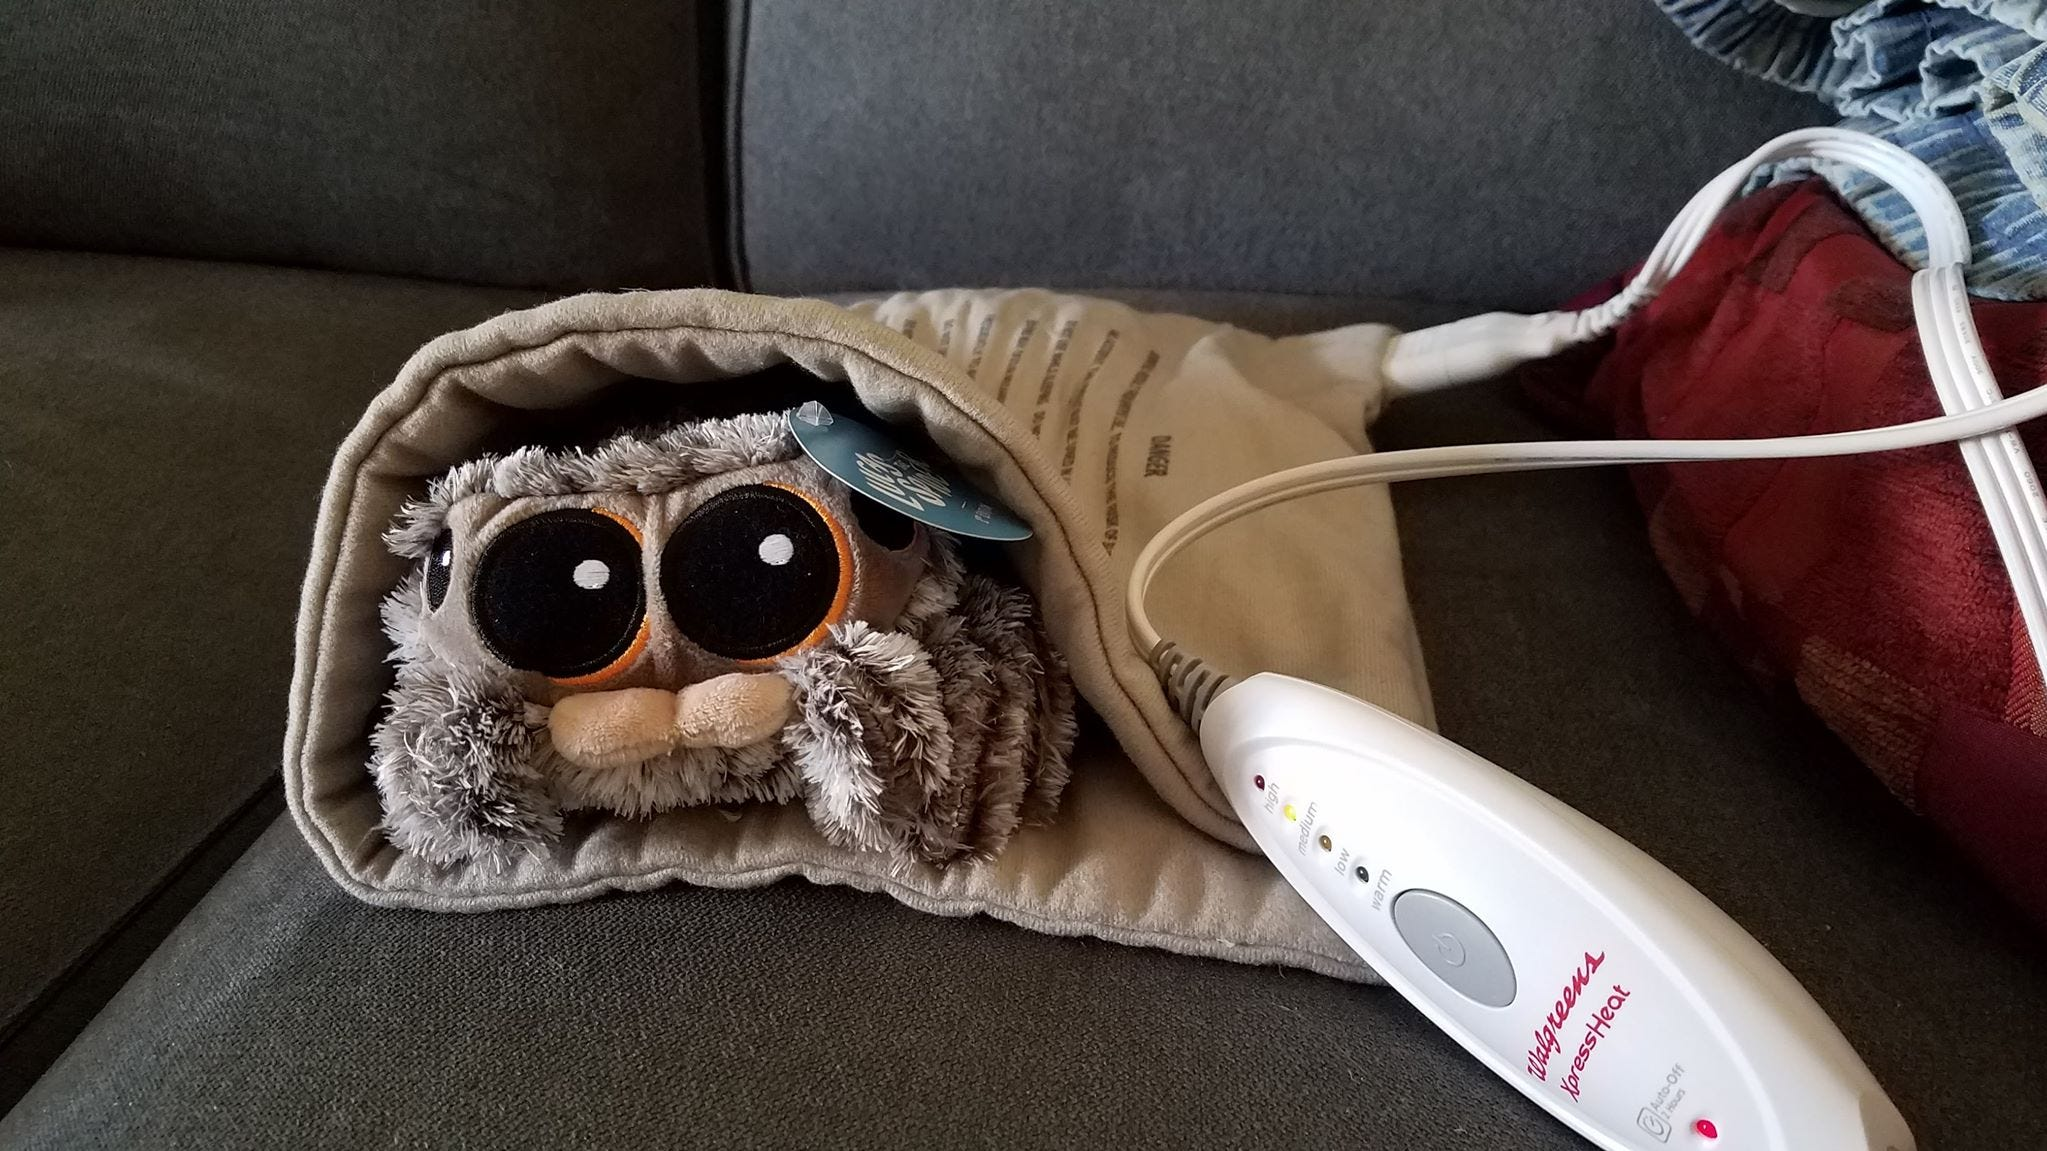 People are angry the lovable, long-awaited Lucas the Spider plushie won't talk